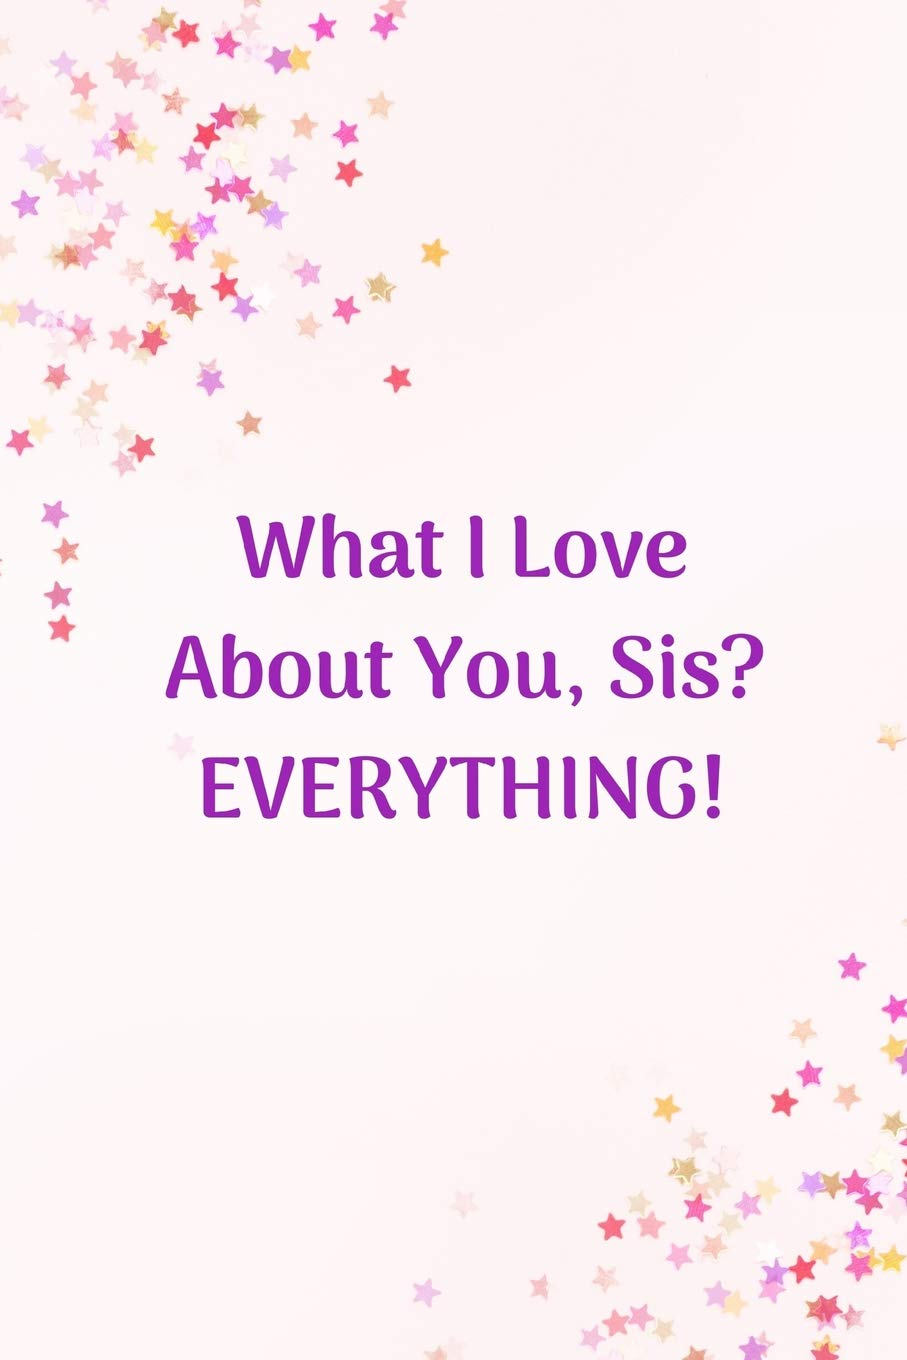 Amazon.com: What I Love About You Sis? EVERYTHING!: Sister ...